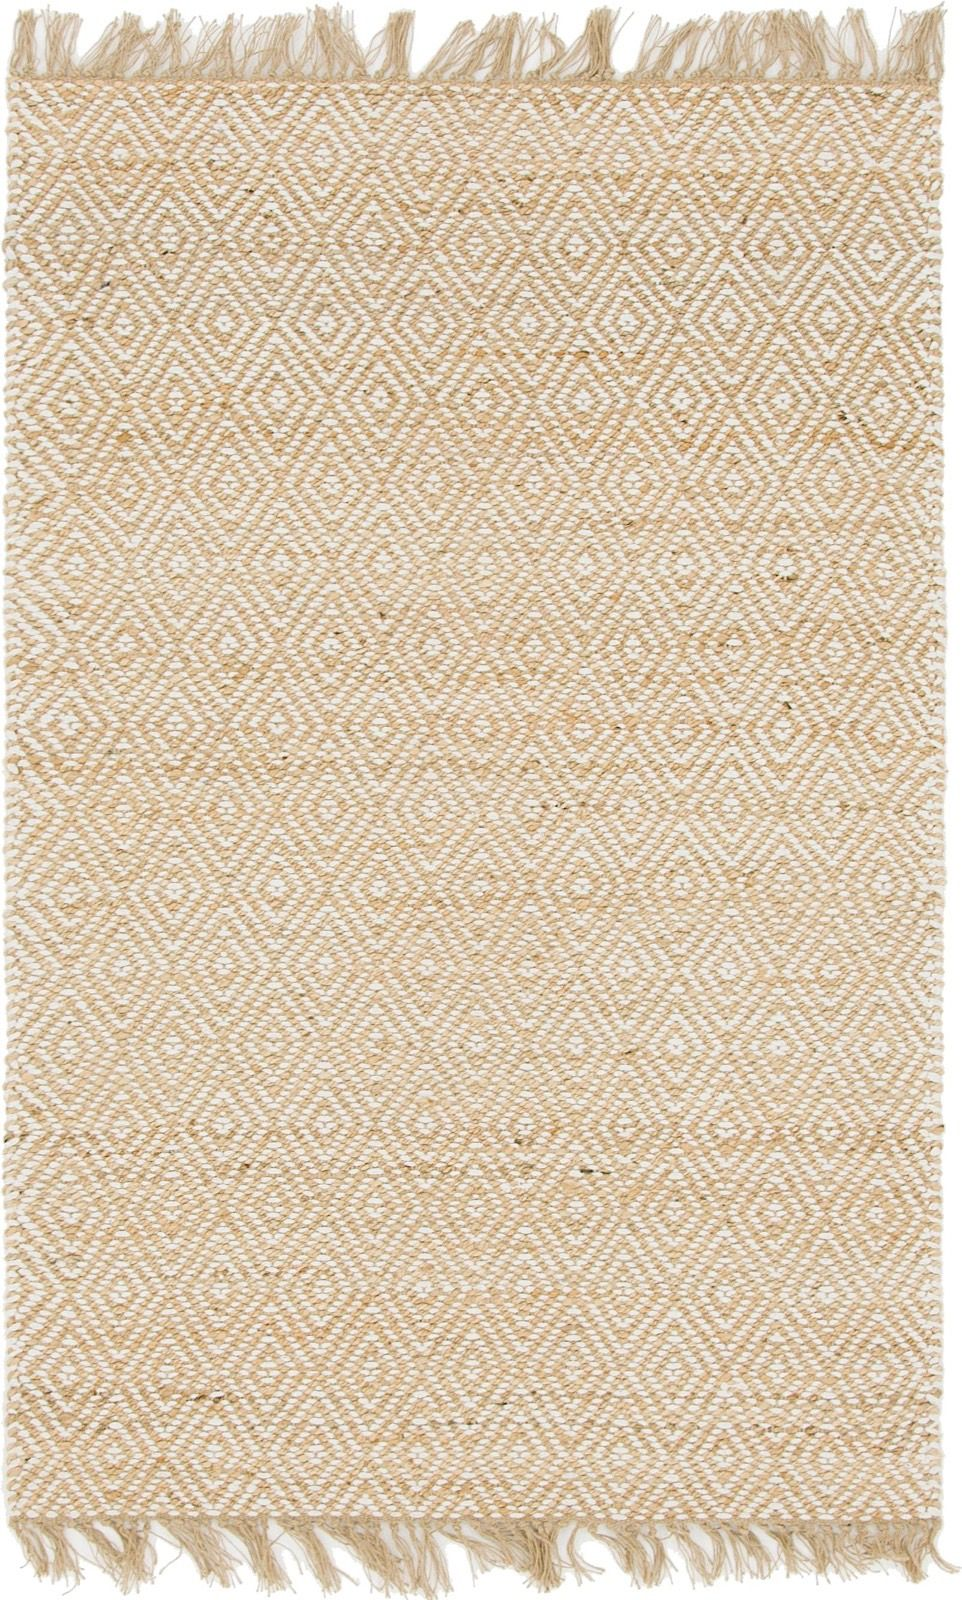 rugpal jewel braided area rug collection